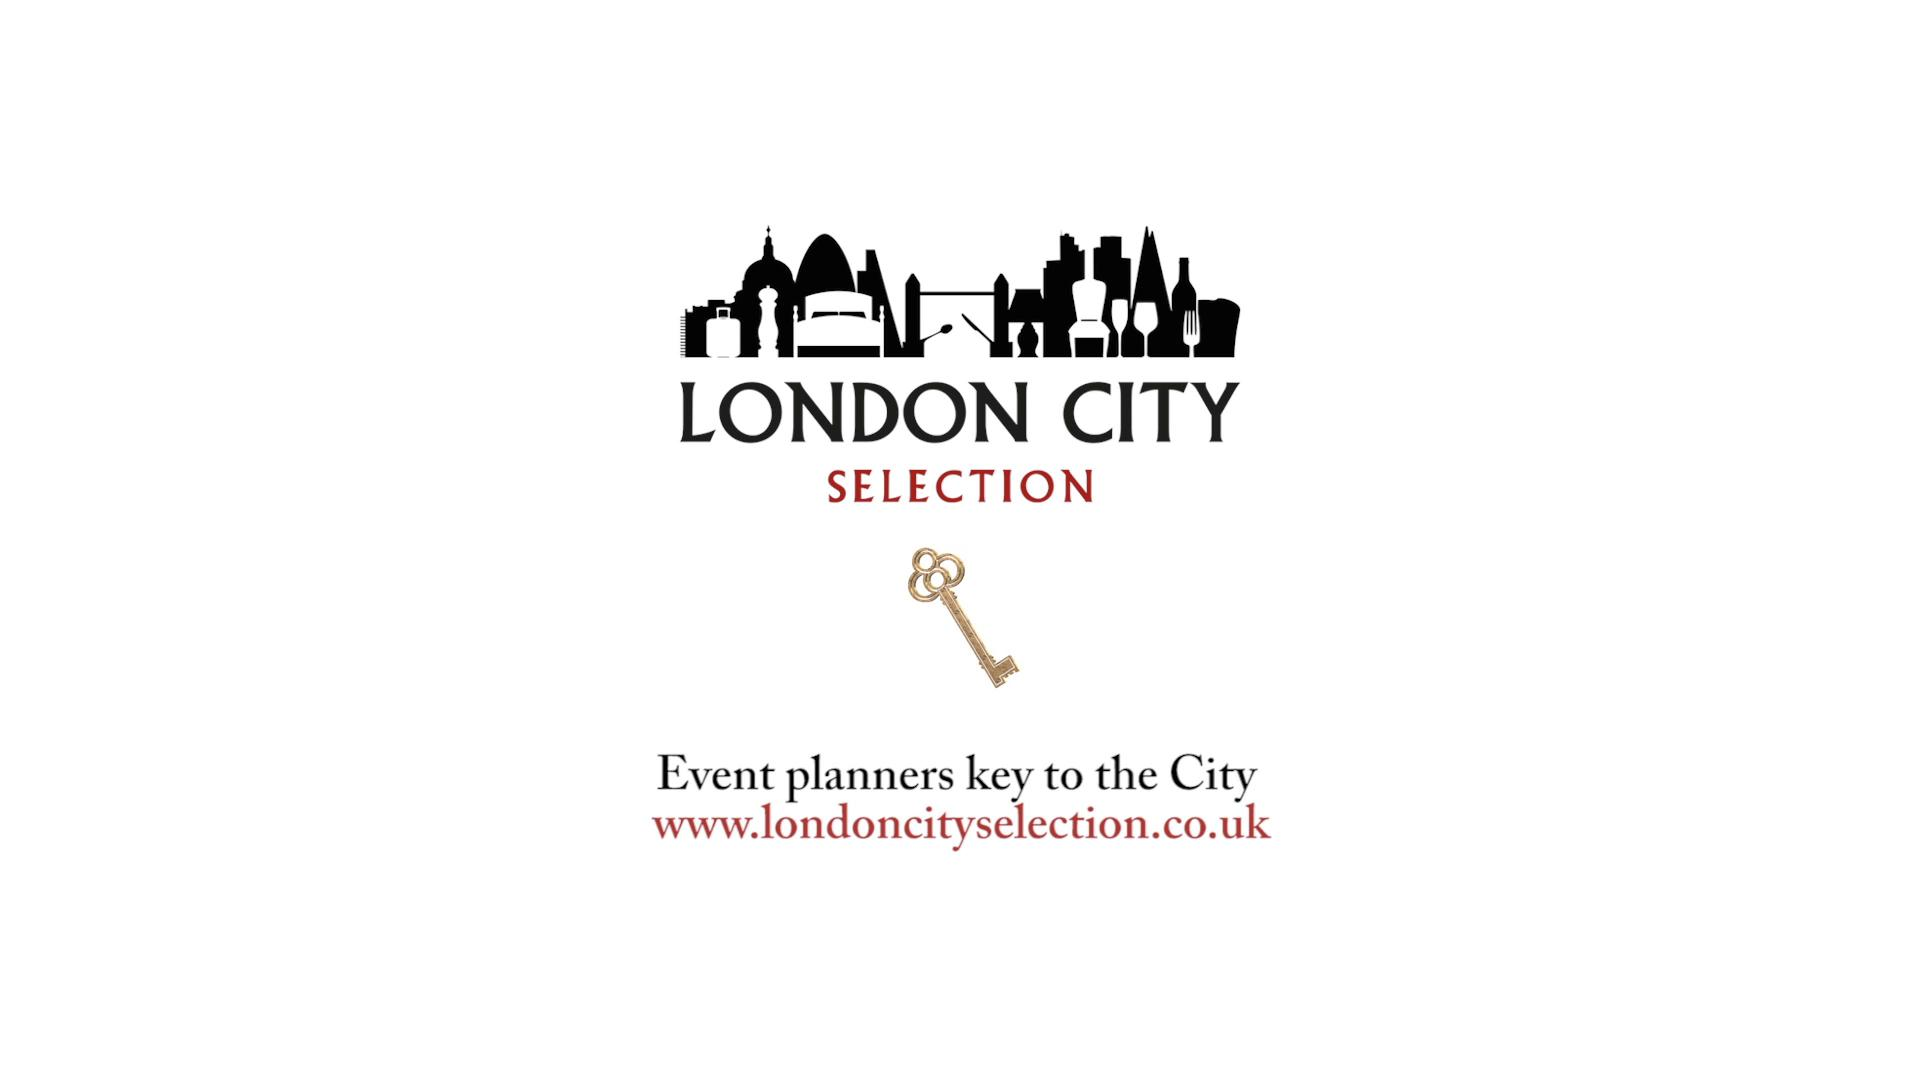 London City Selection, event planners key to the city